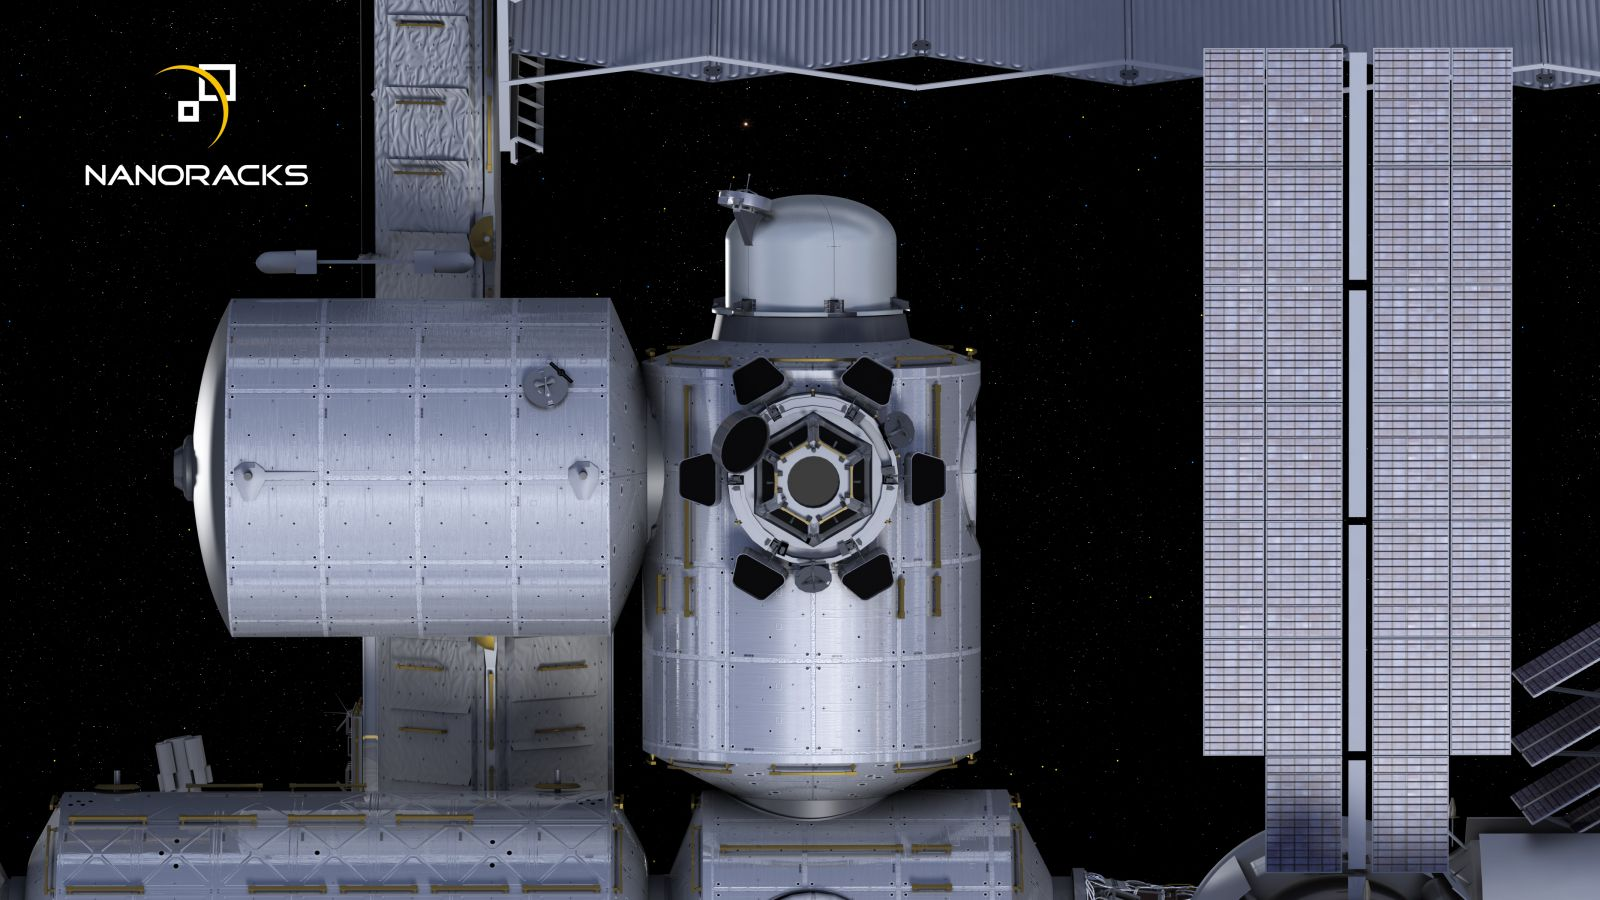 NanoRacks airlock from below